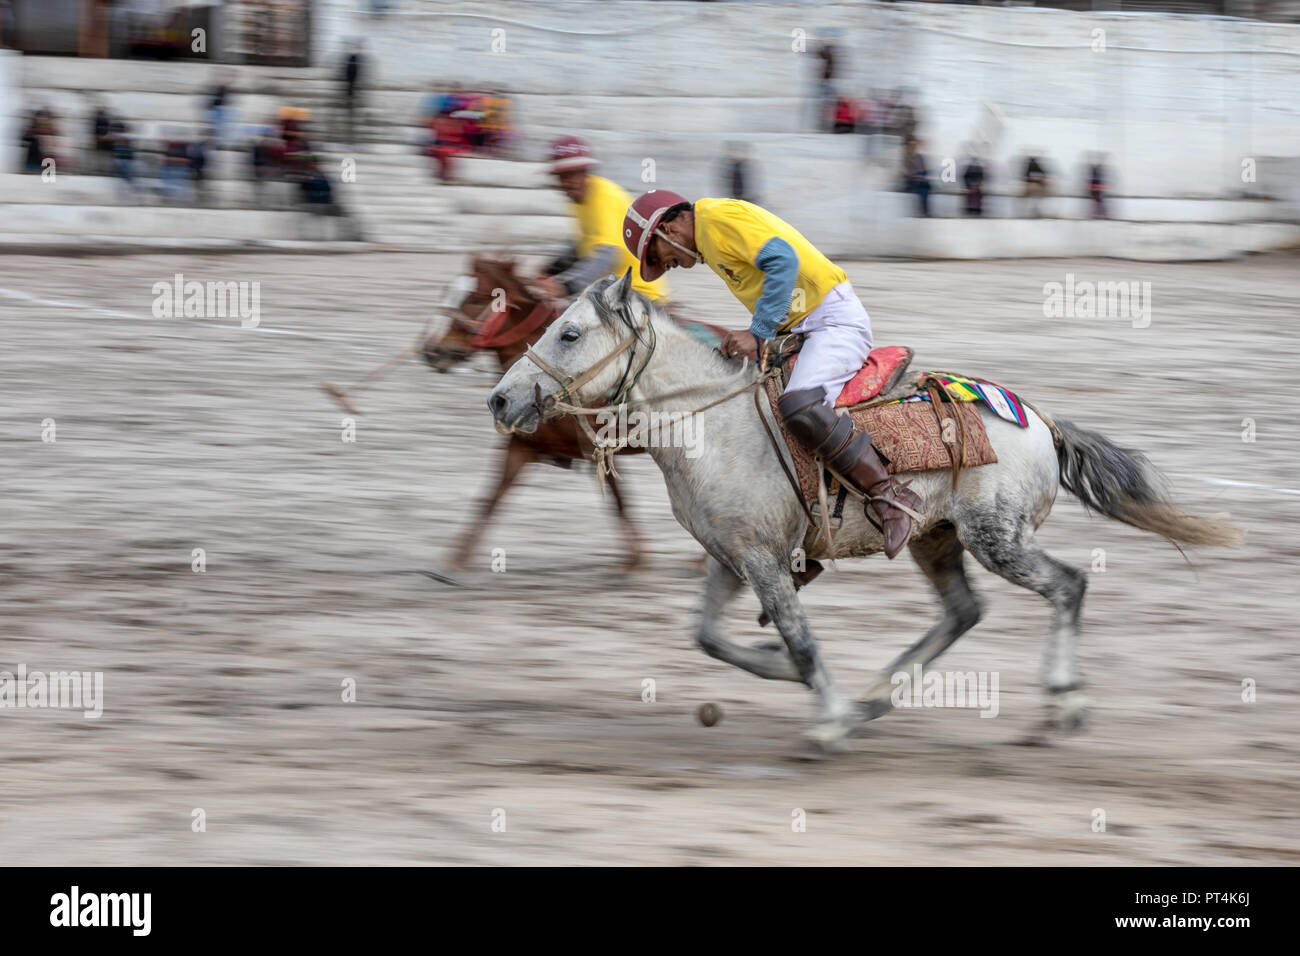 Men taking part in a polo match in Leh, Ladakh, Kashmir, India - Stock Image